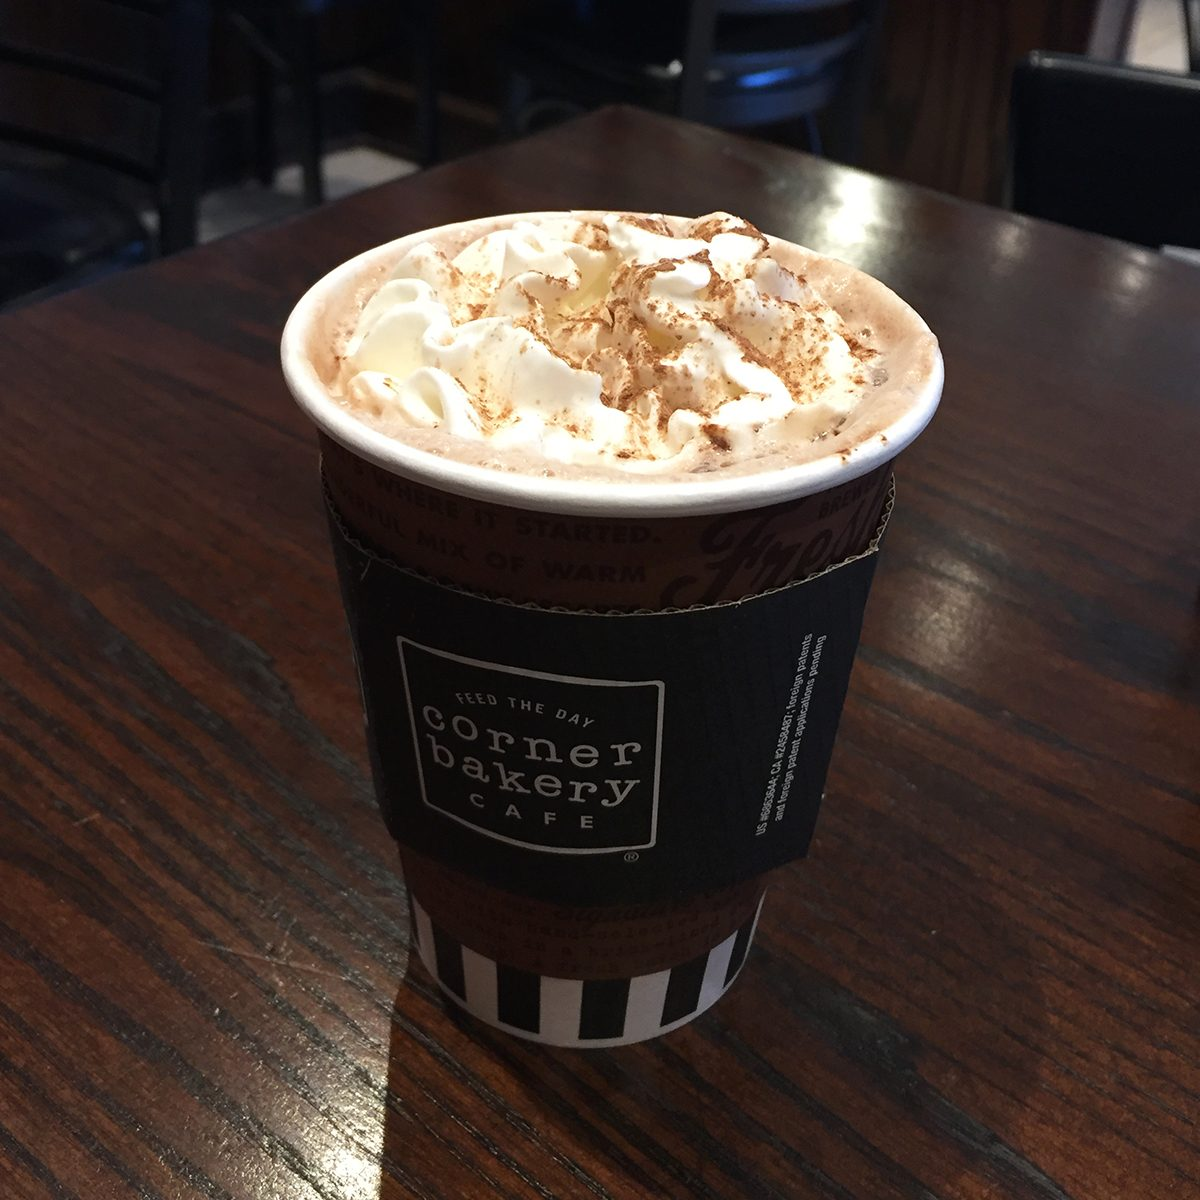 Corner Bakery hot chocolate